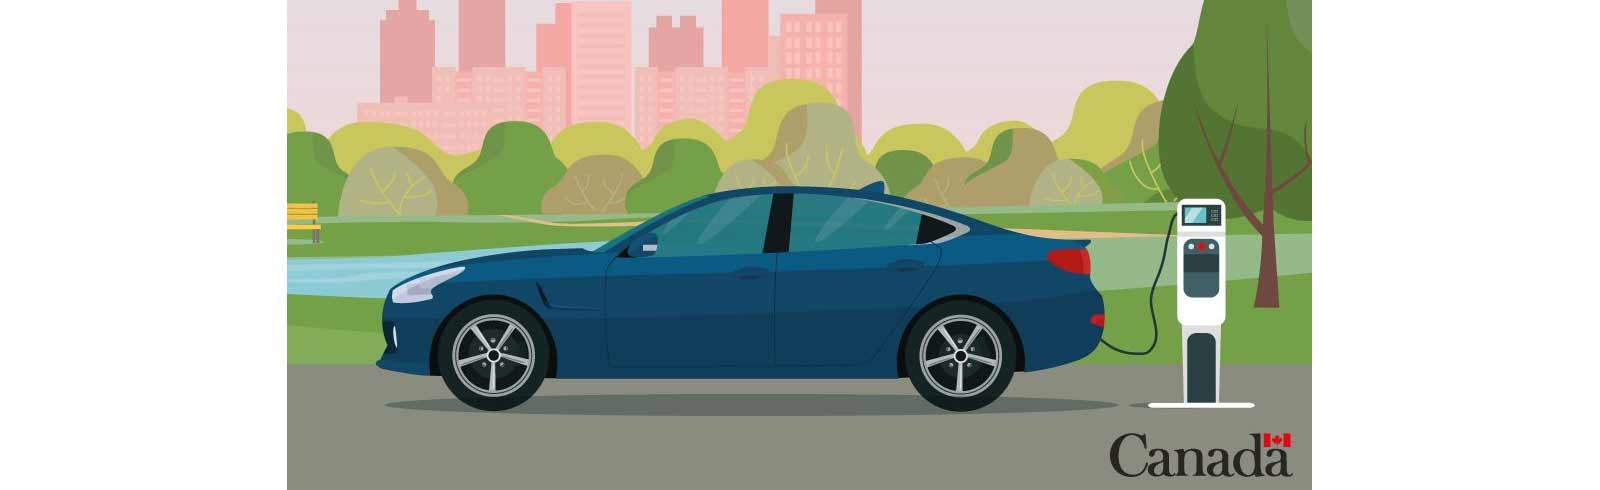 Canada invests in new EV chargers in Nova Scotia